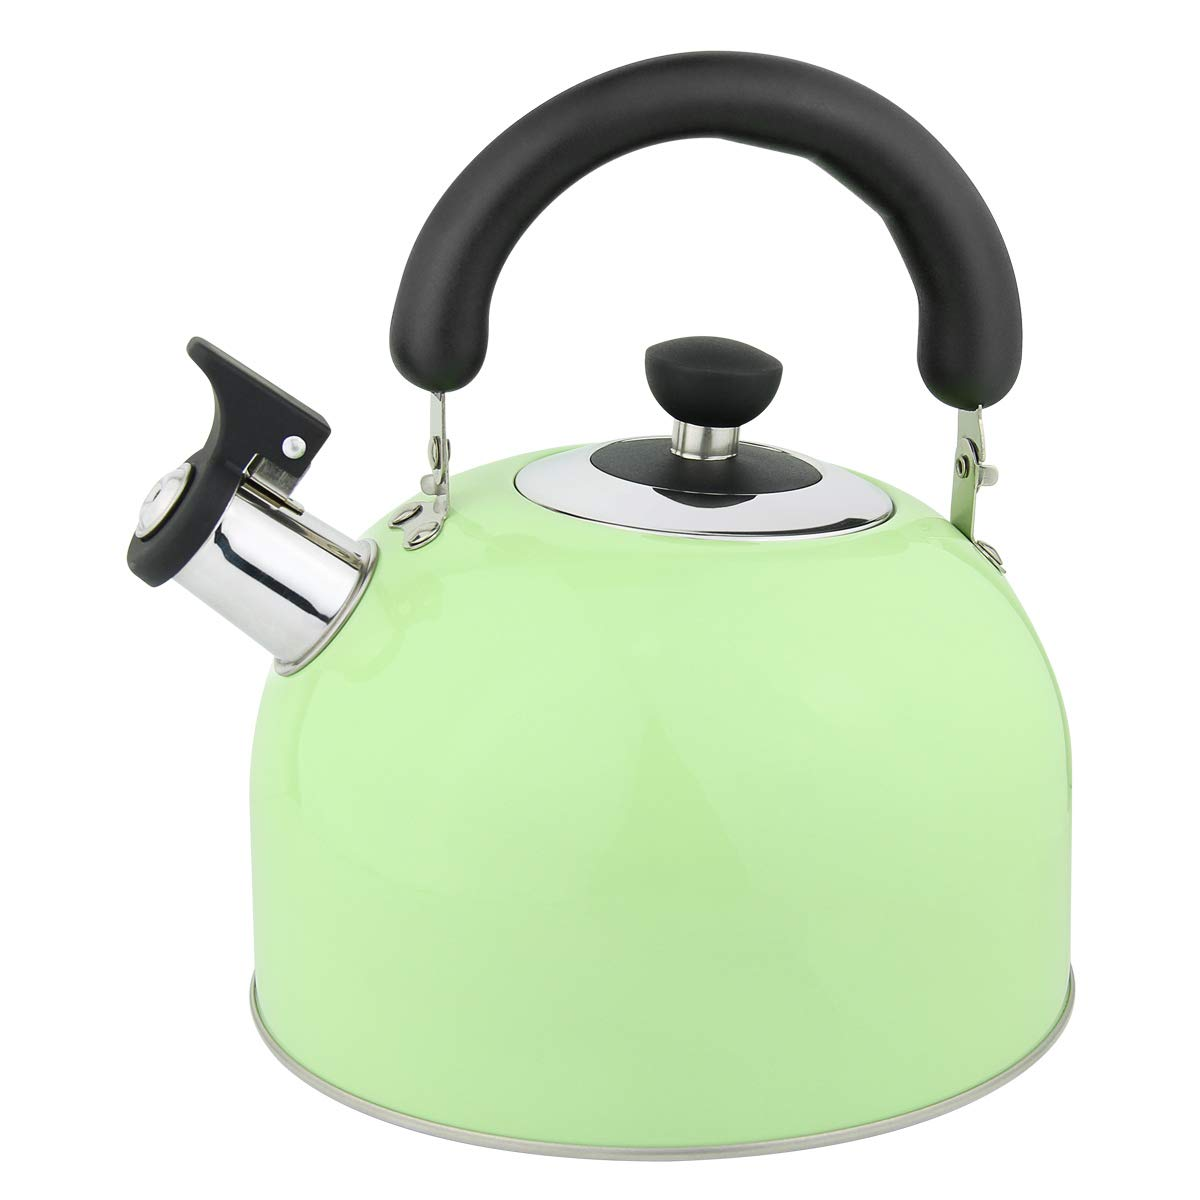 Riwendell 3.2 Quart Whistling Candy ColorTea Kettle Stainless Steel StoveTop Teapot GS-04025-3L, Green